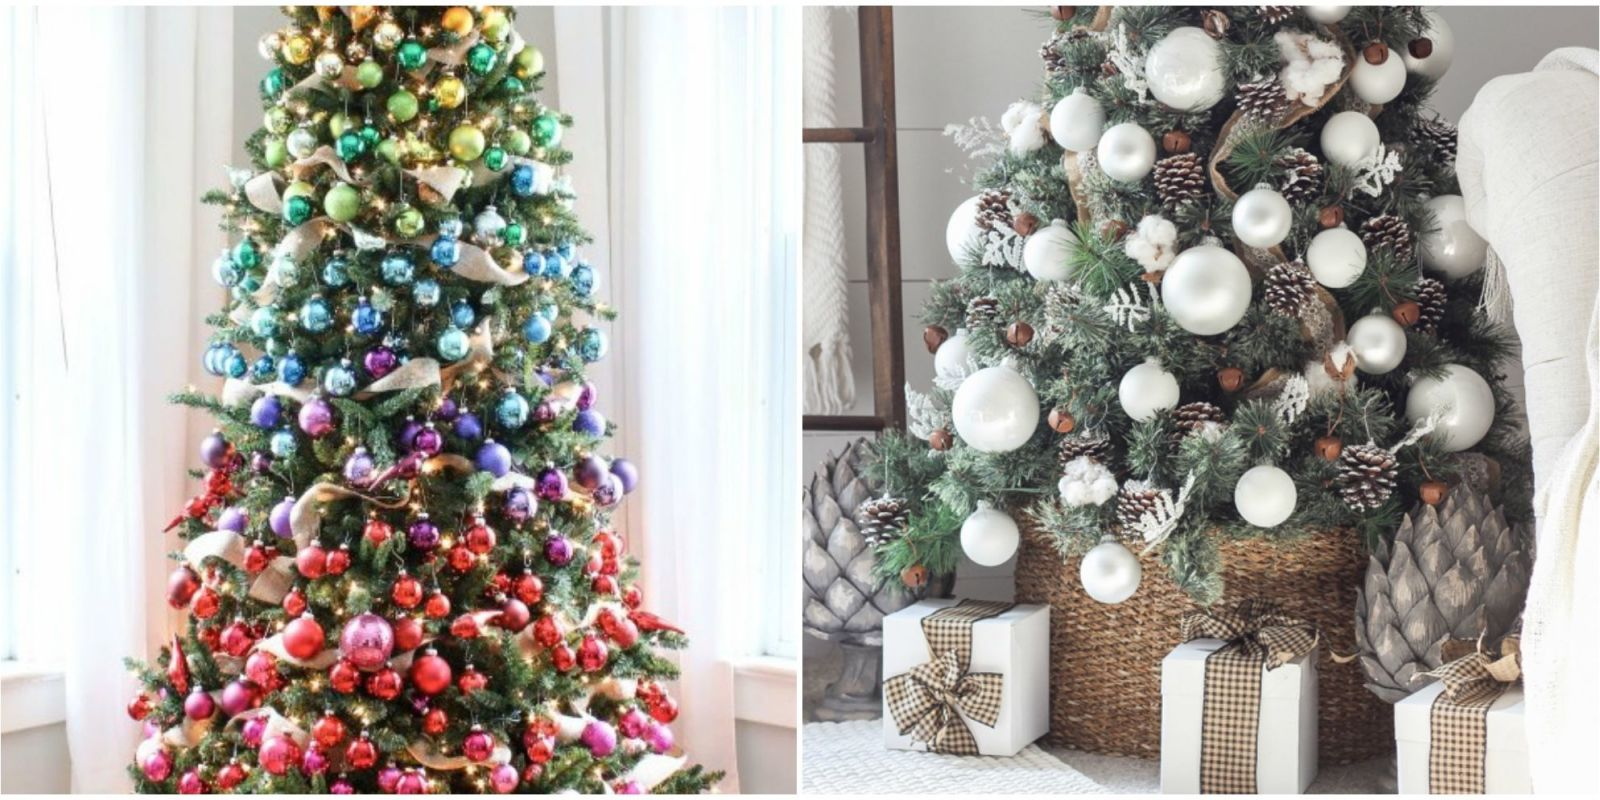 Tree Decorating Ideas 35 Unique Christmas Tree Decorations  2017 Ideas For Decorating